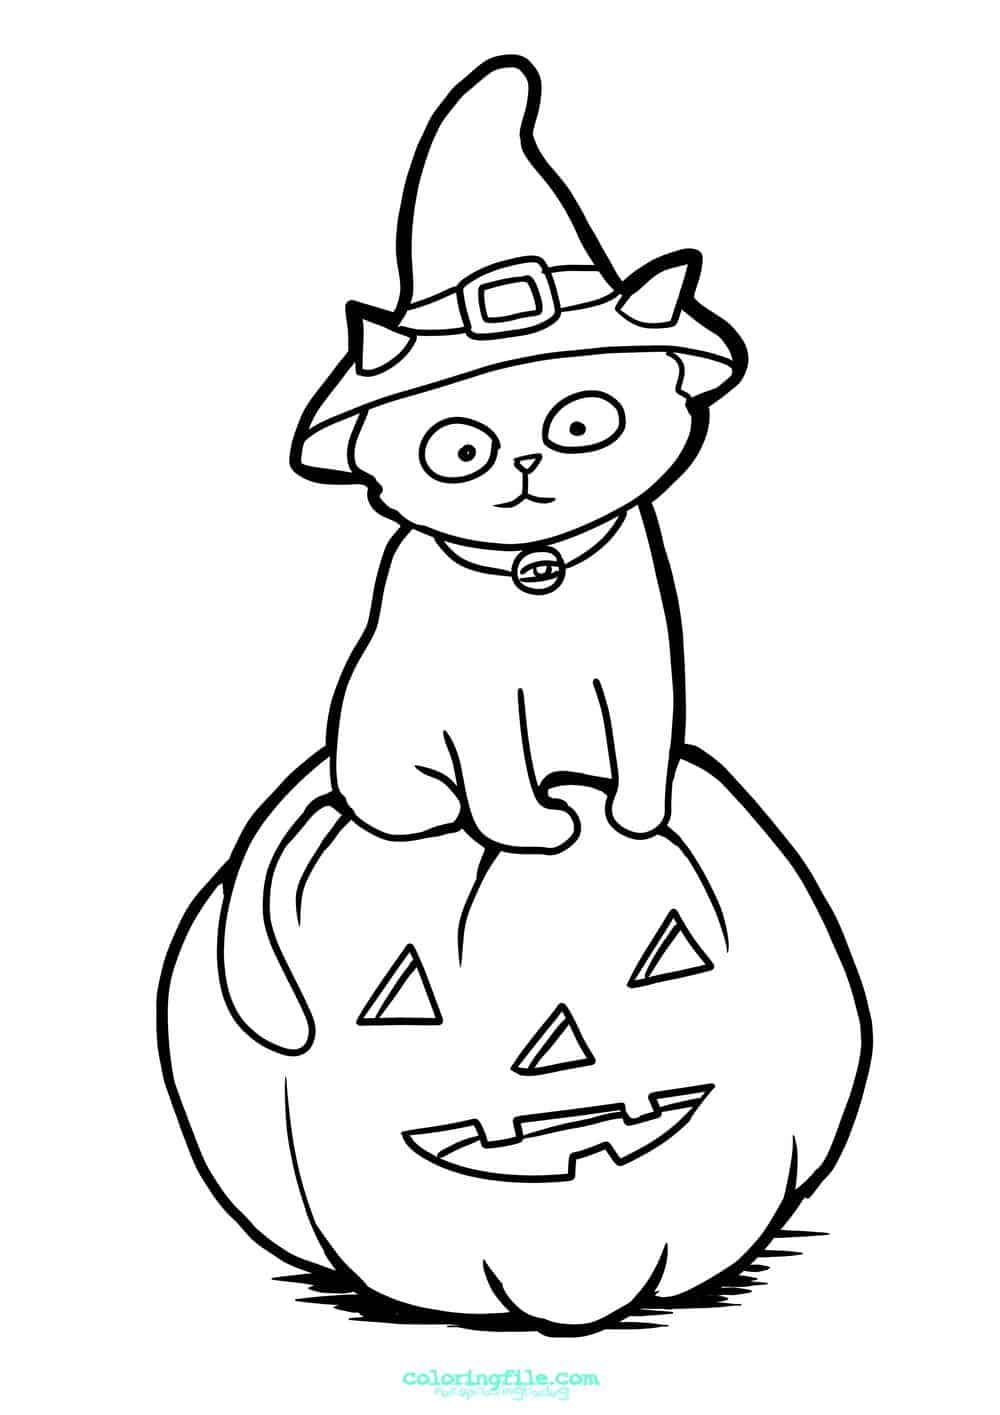 Free Printable Pumpkin Coloring Sheets Inspirational 61 Most